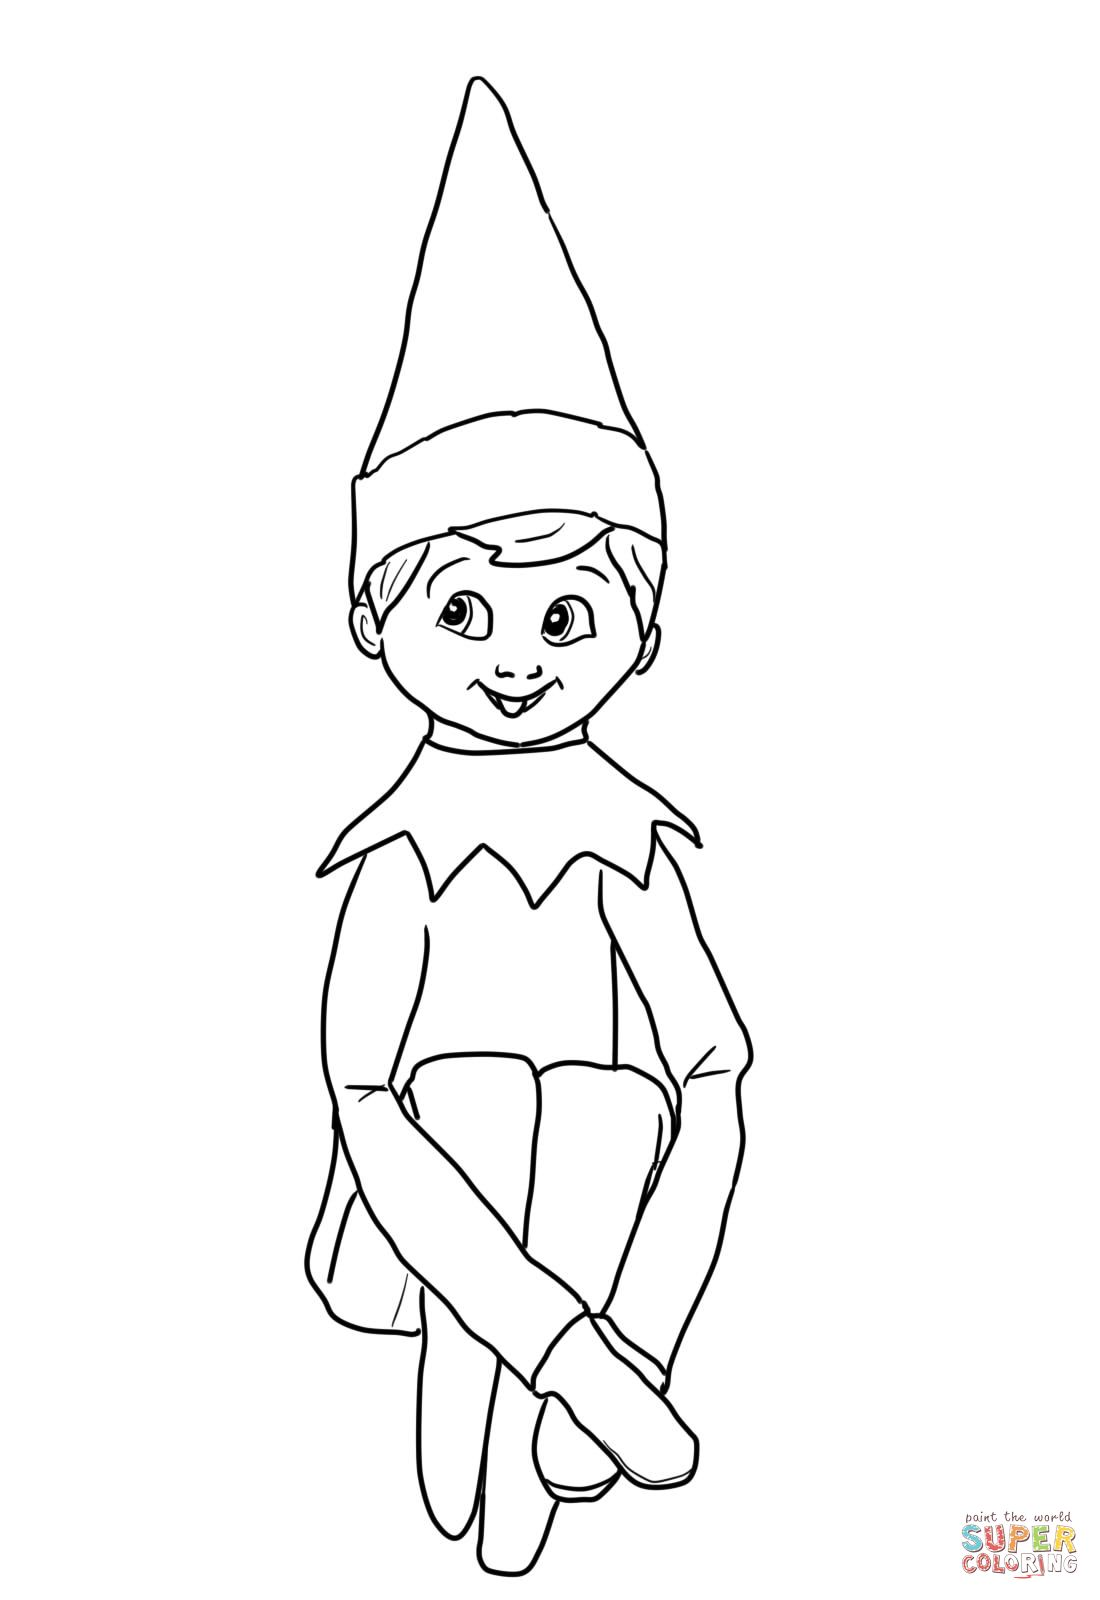 Christmas Elf On Shelf Coloring Page Supercoloring Com Christmas Coloring Sheets Santa Coloring Pages Printable Christmas Coloring Pages